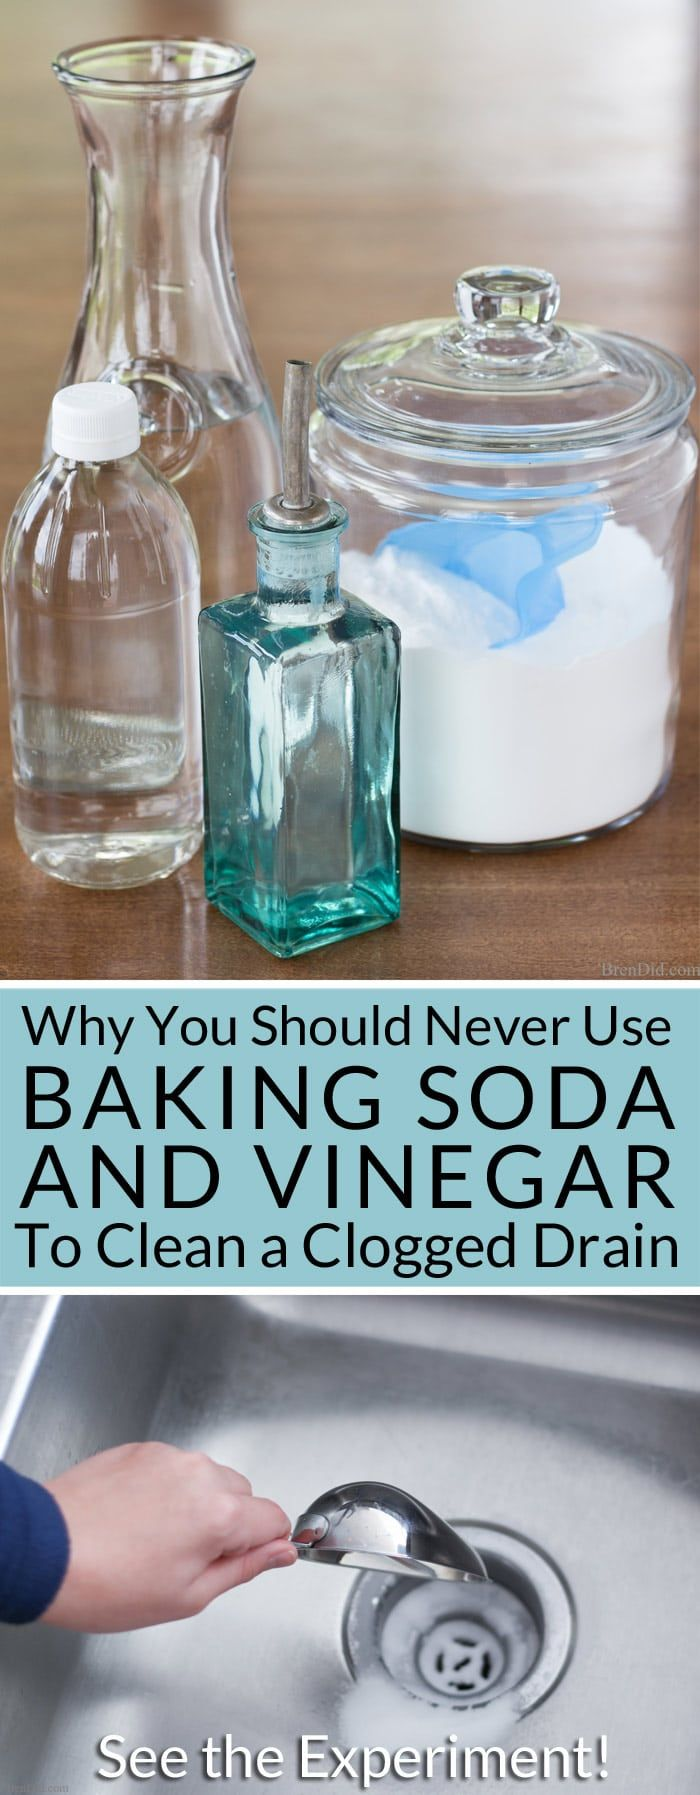 Why You Should Never Use Baking Soda u Vinegar to Clean Drains